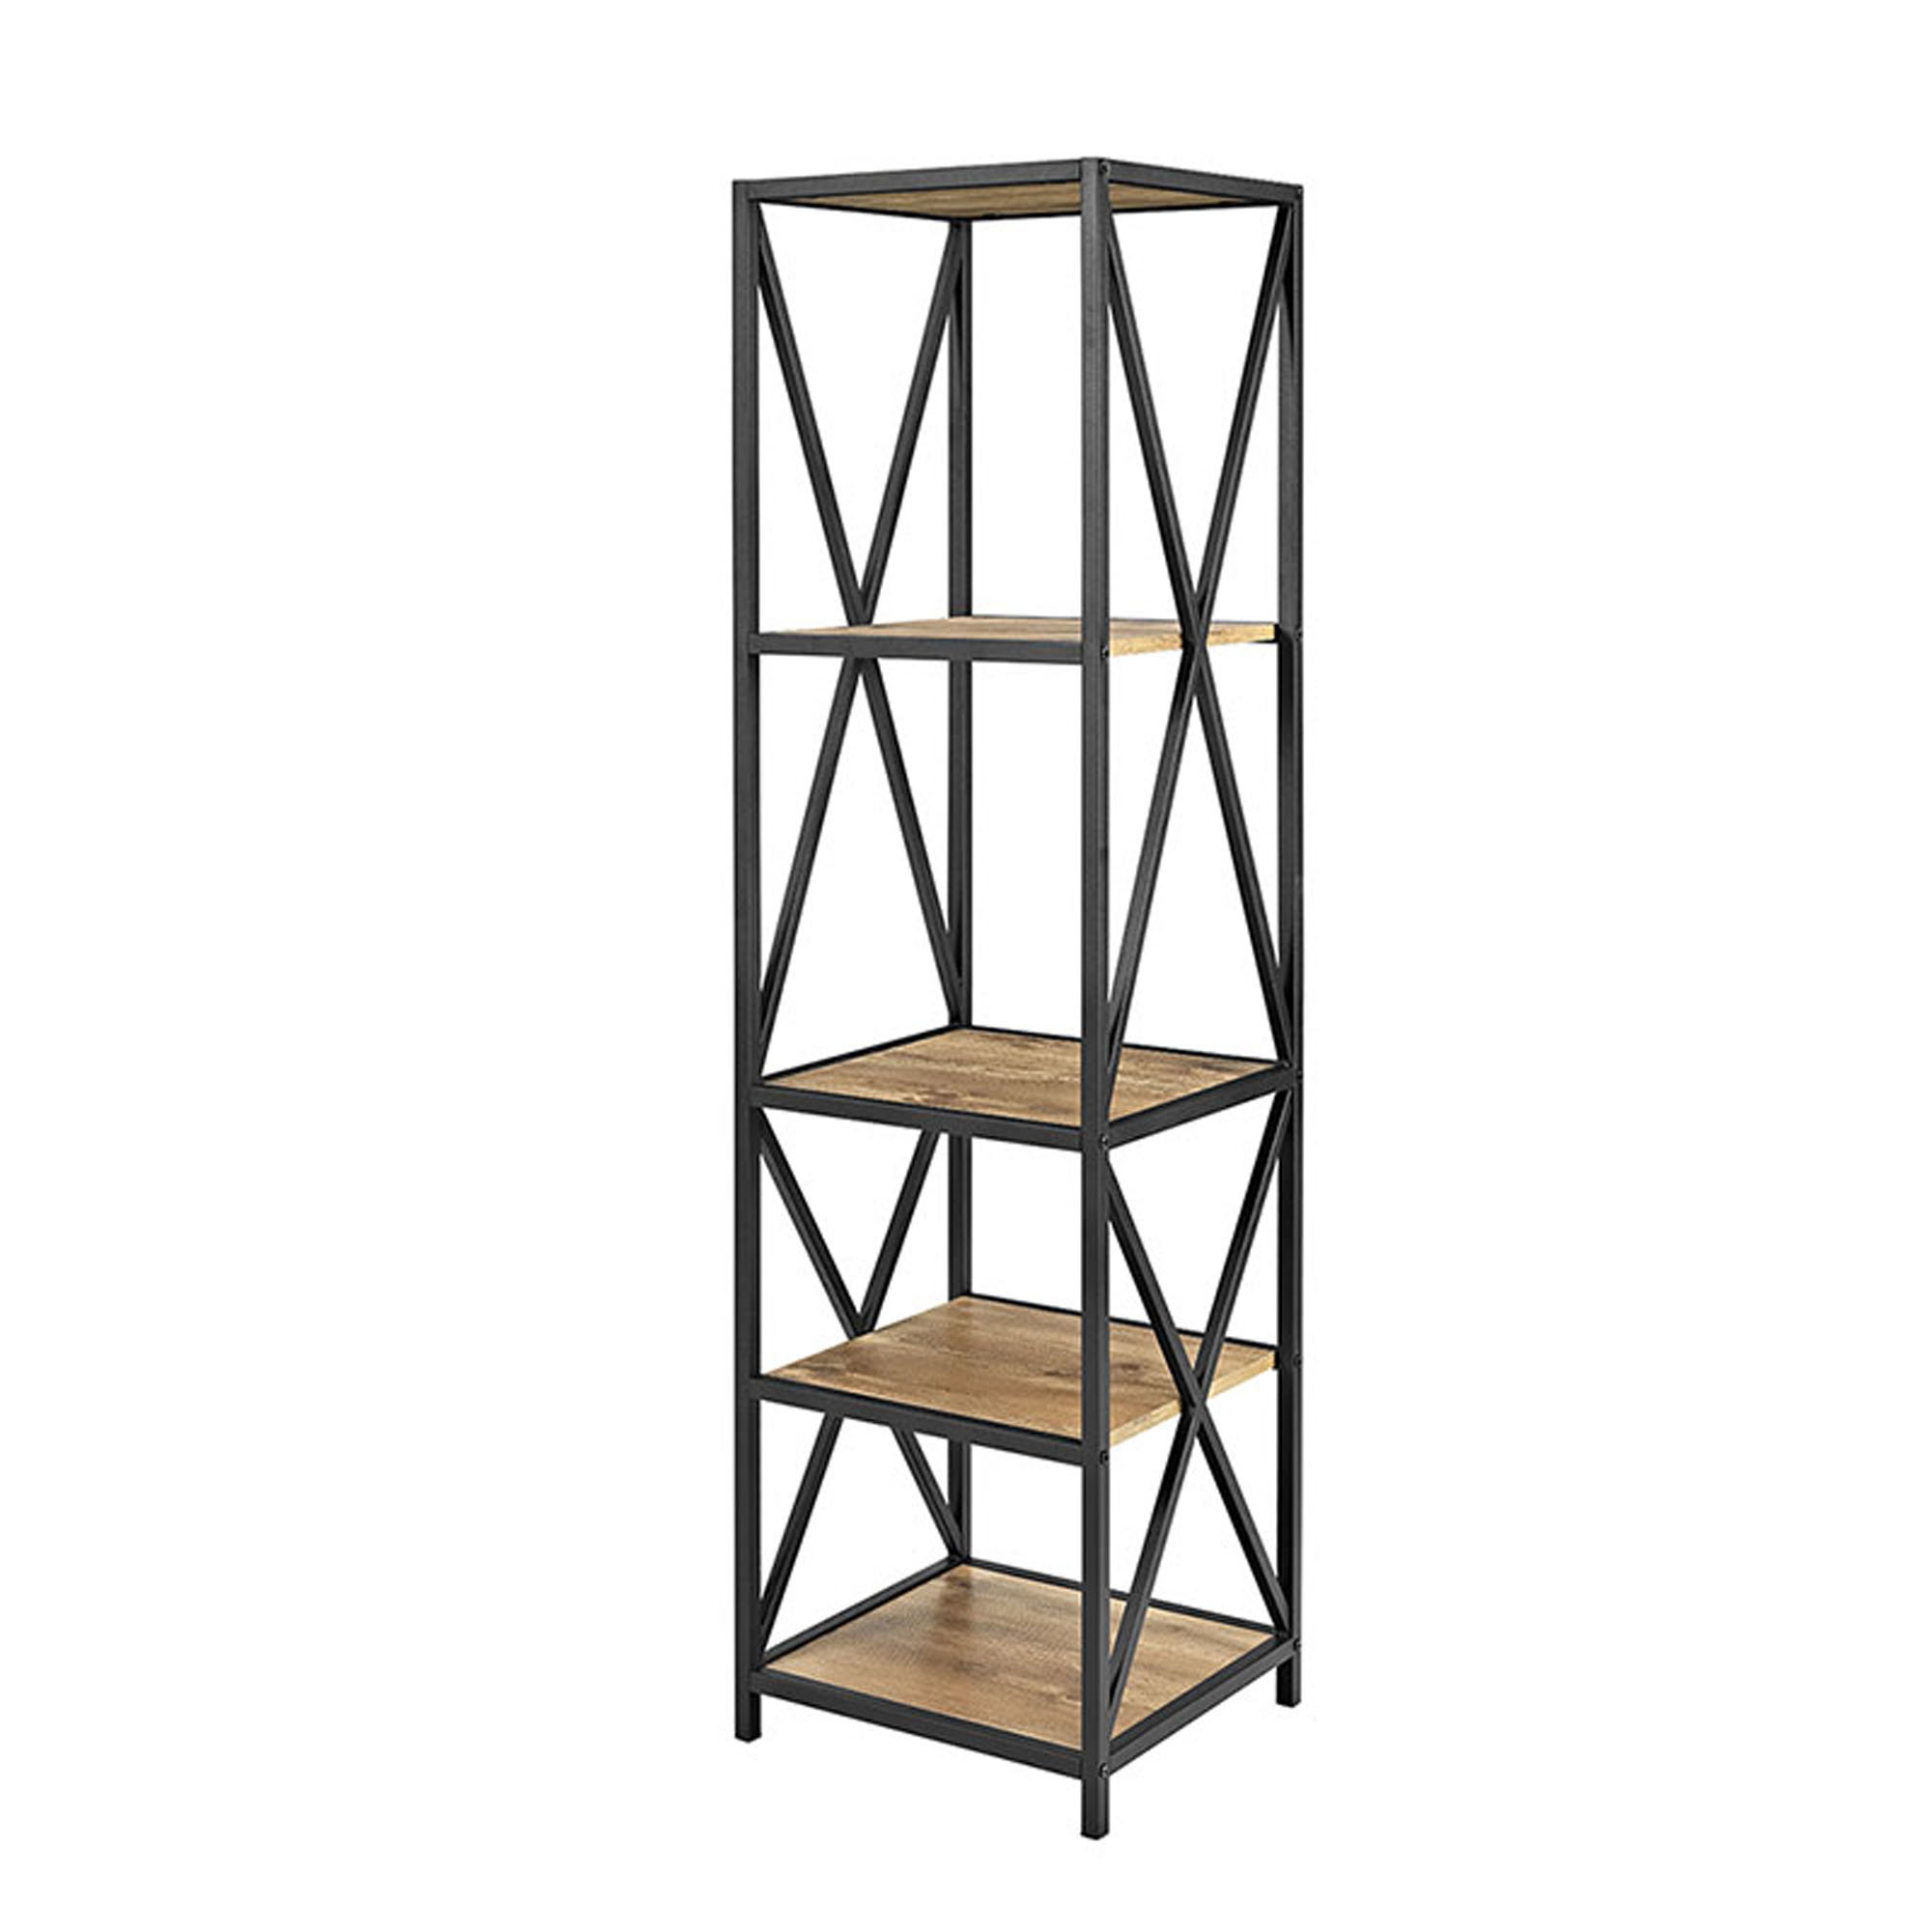 Augustus Etagere Bookcase Intended For Recent Rech 4 Tier Etagere Bookcases (Gallery 15 of 20)